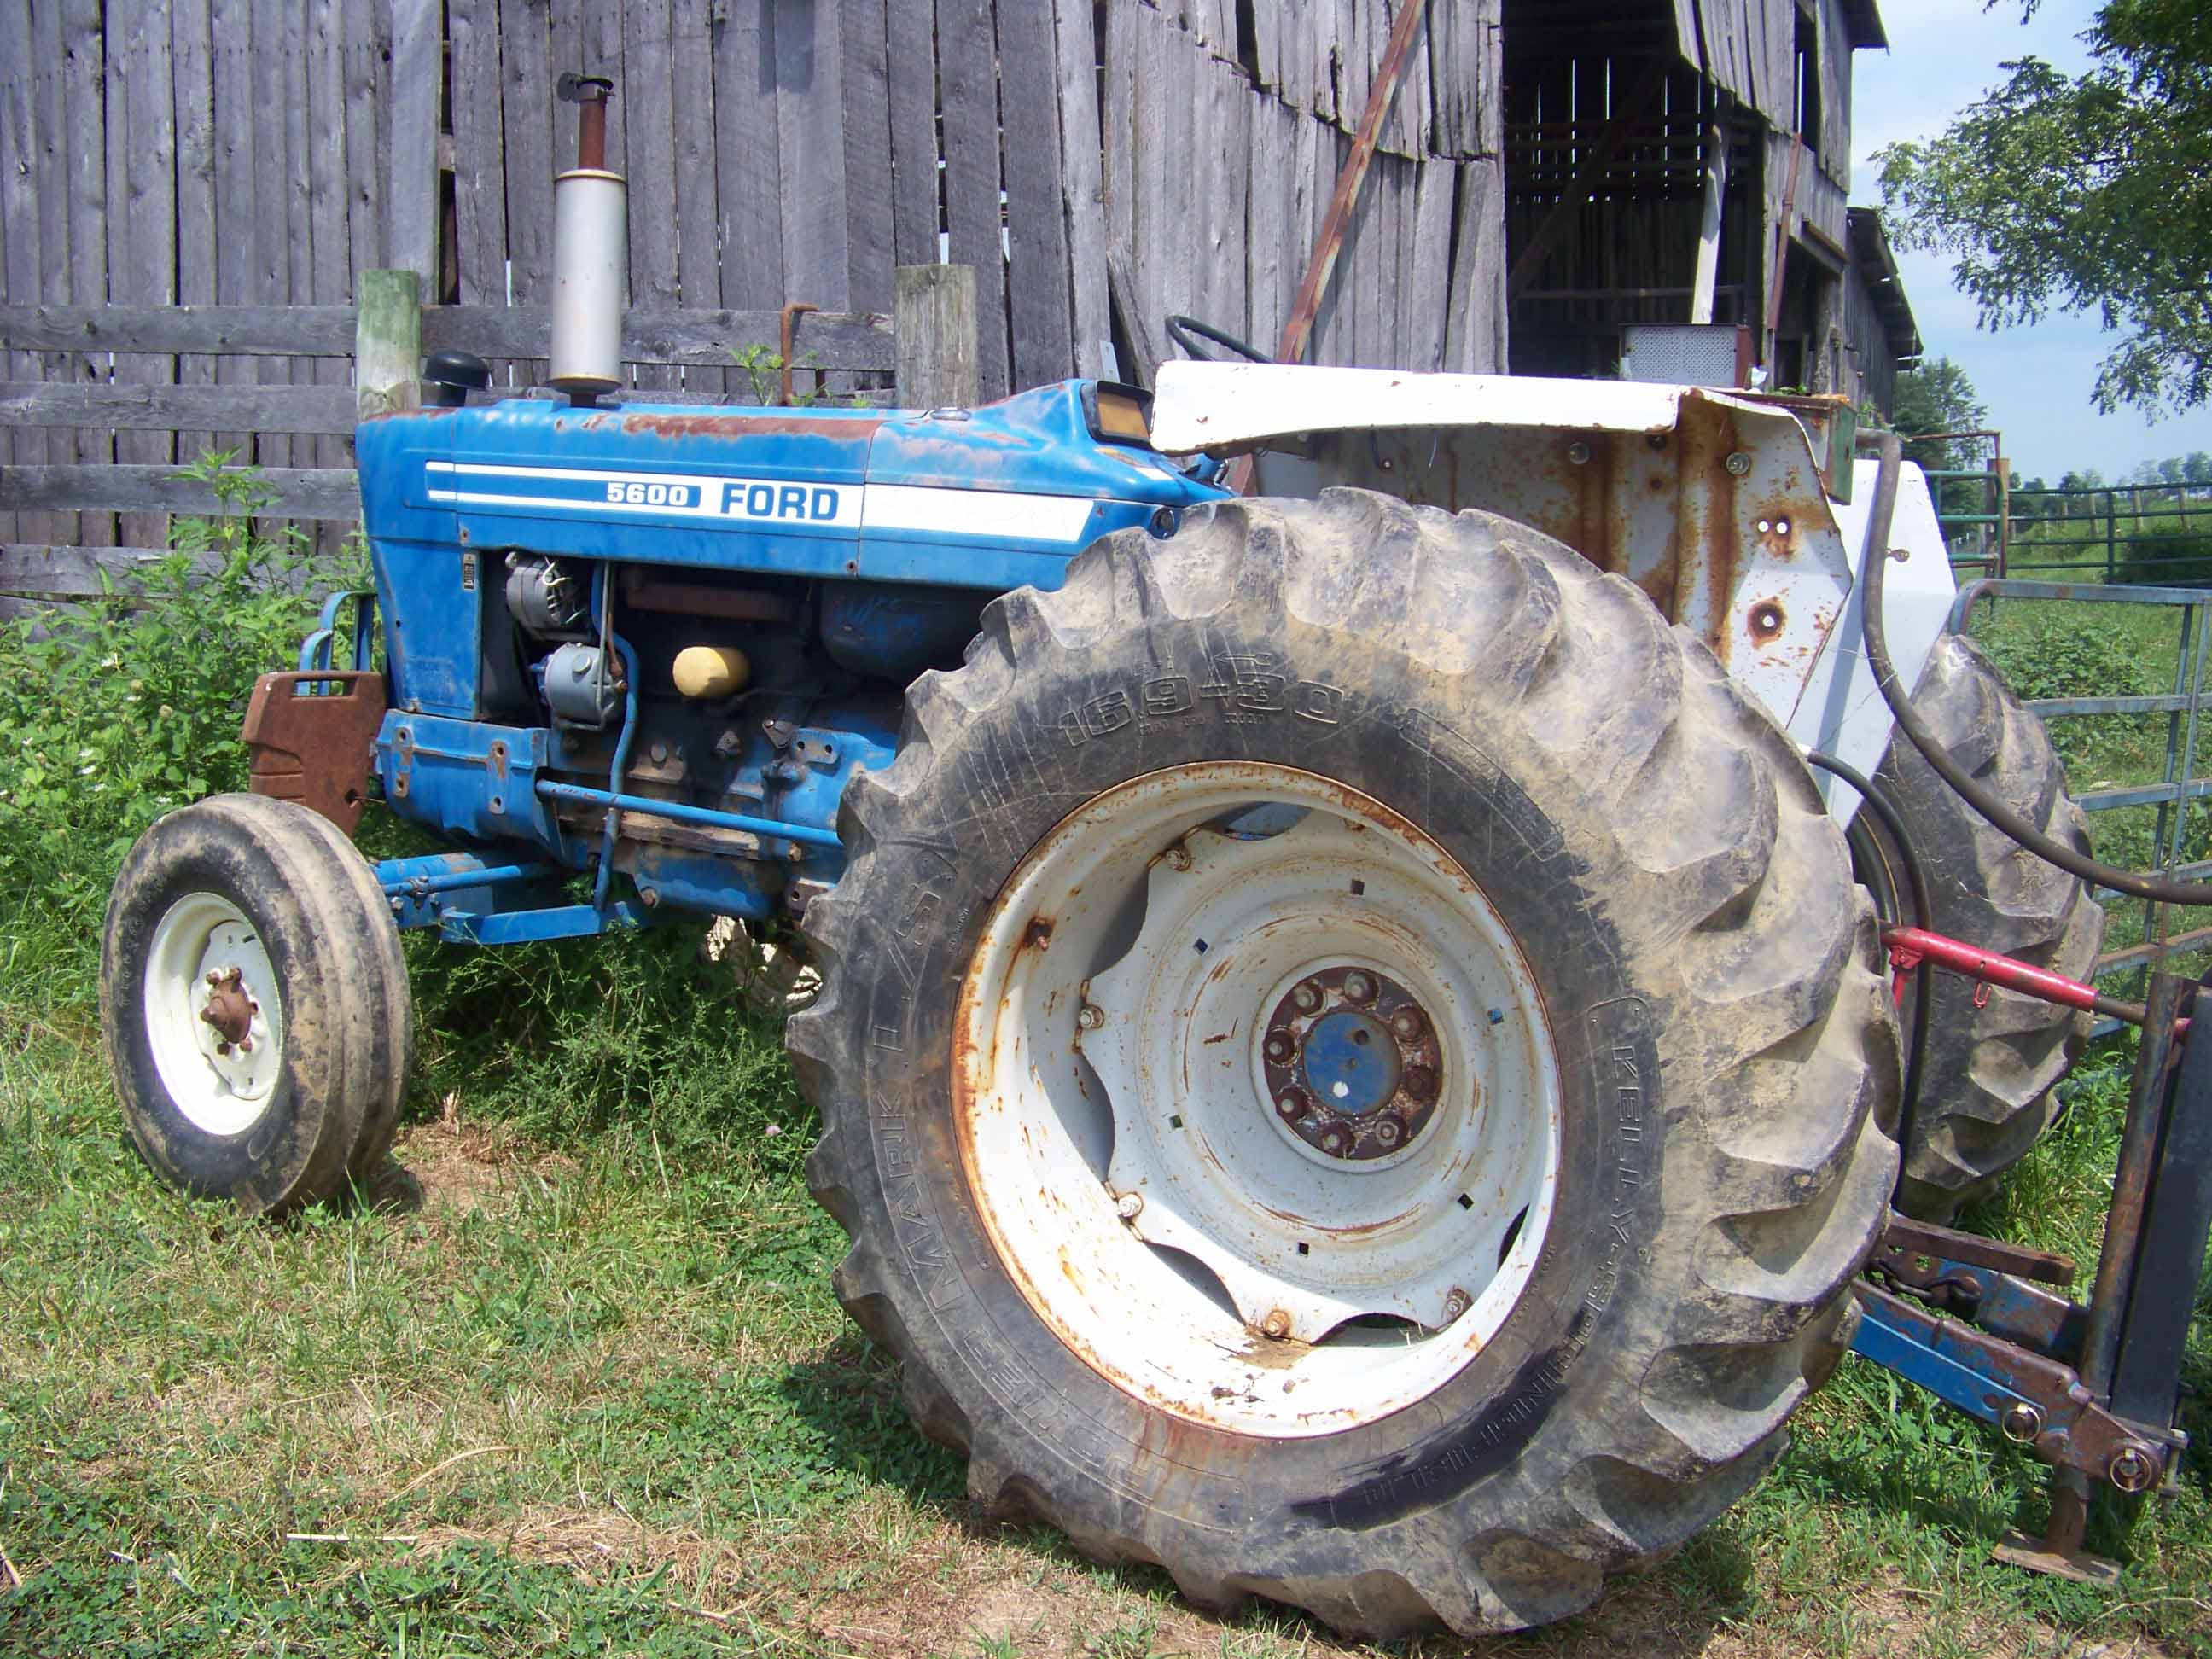 ford 5600 tractor parts online parts store helpline 1-866-441-8193.  alma tractor & equipment inc.